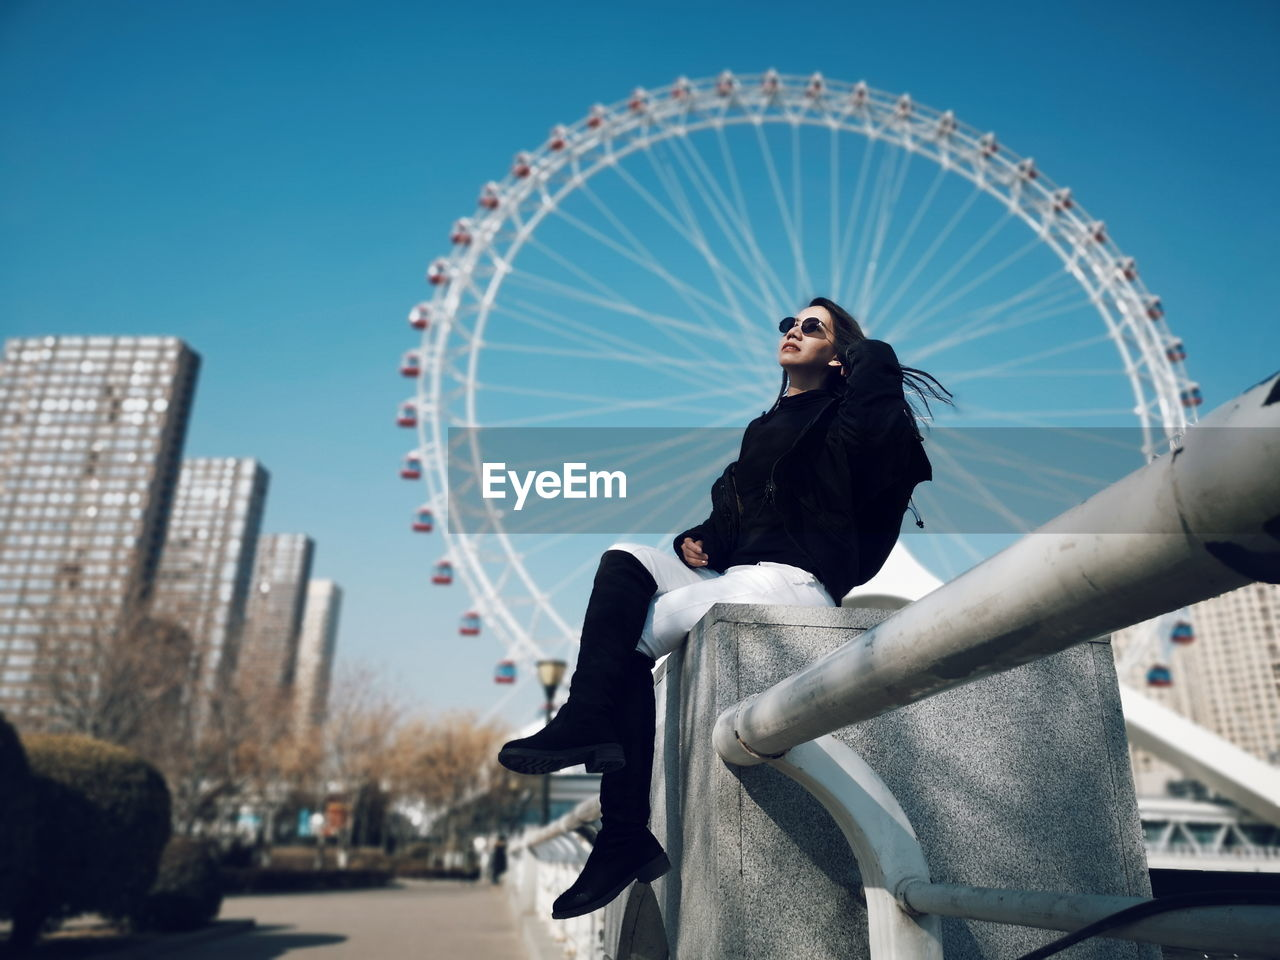 Low angle view of woman sitting on retaining wall against ferris wheel and sky